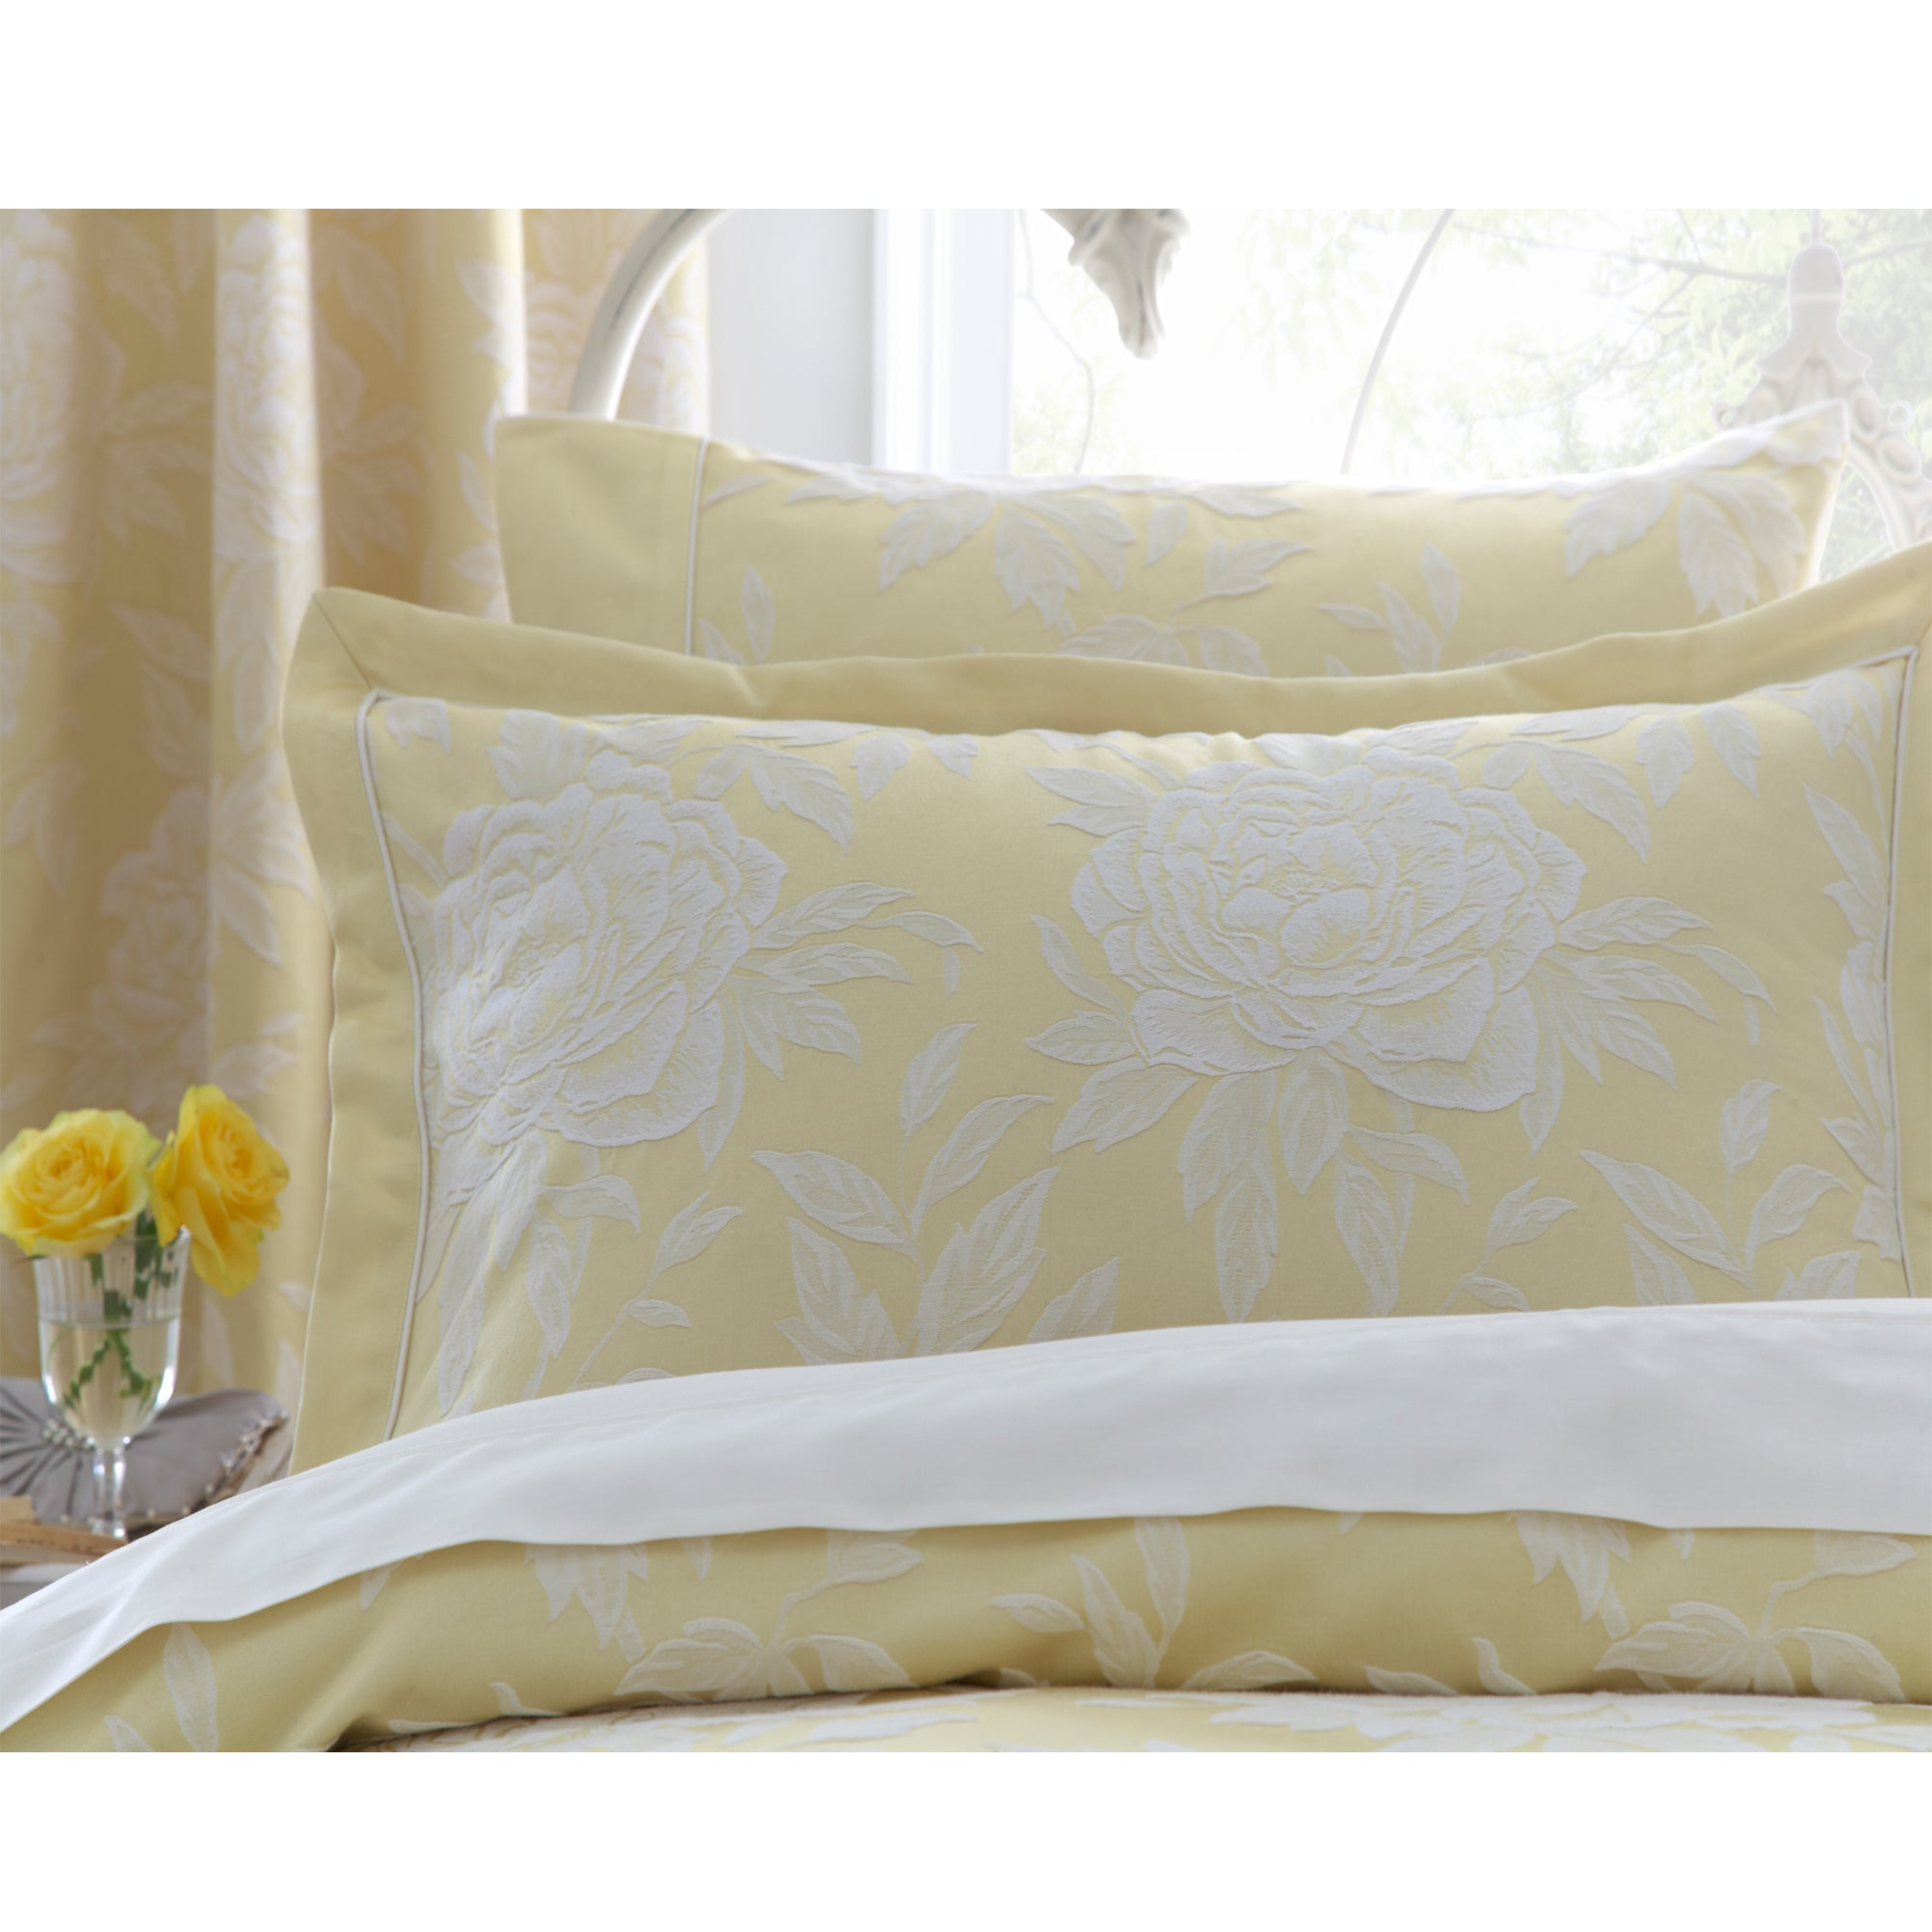 Dorma Lemon Chatsworth Collection Oxford Pillowcase